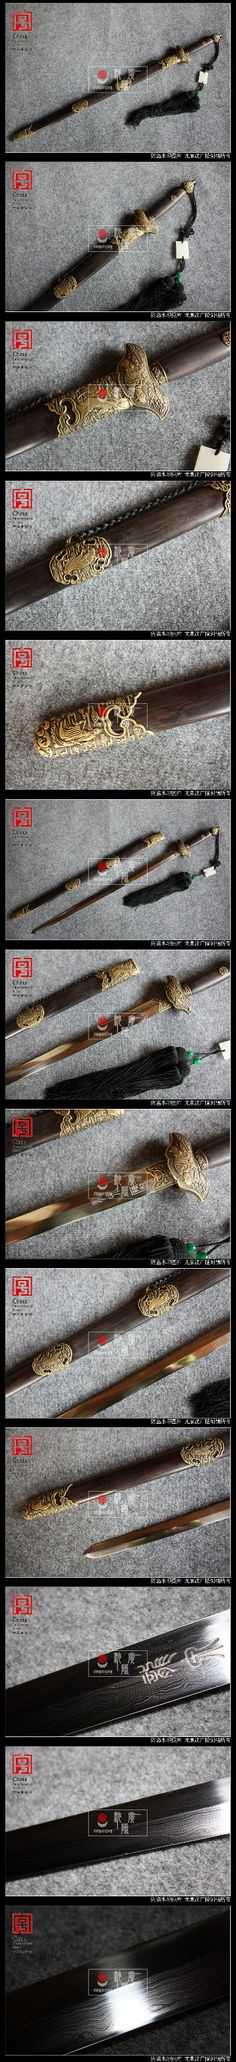 Chinese straight sword (Jian). Beautiful. I have one already but it's antique- it stays on the rack. THIS one I can touch.